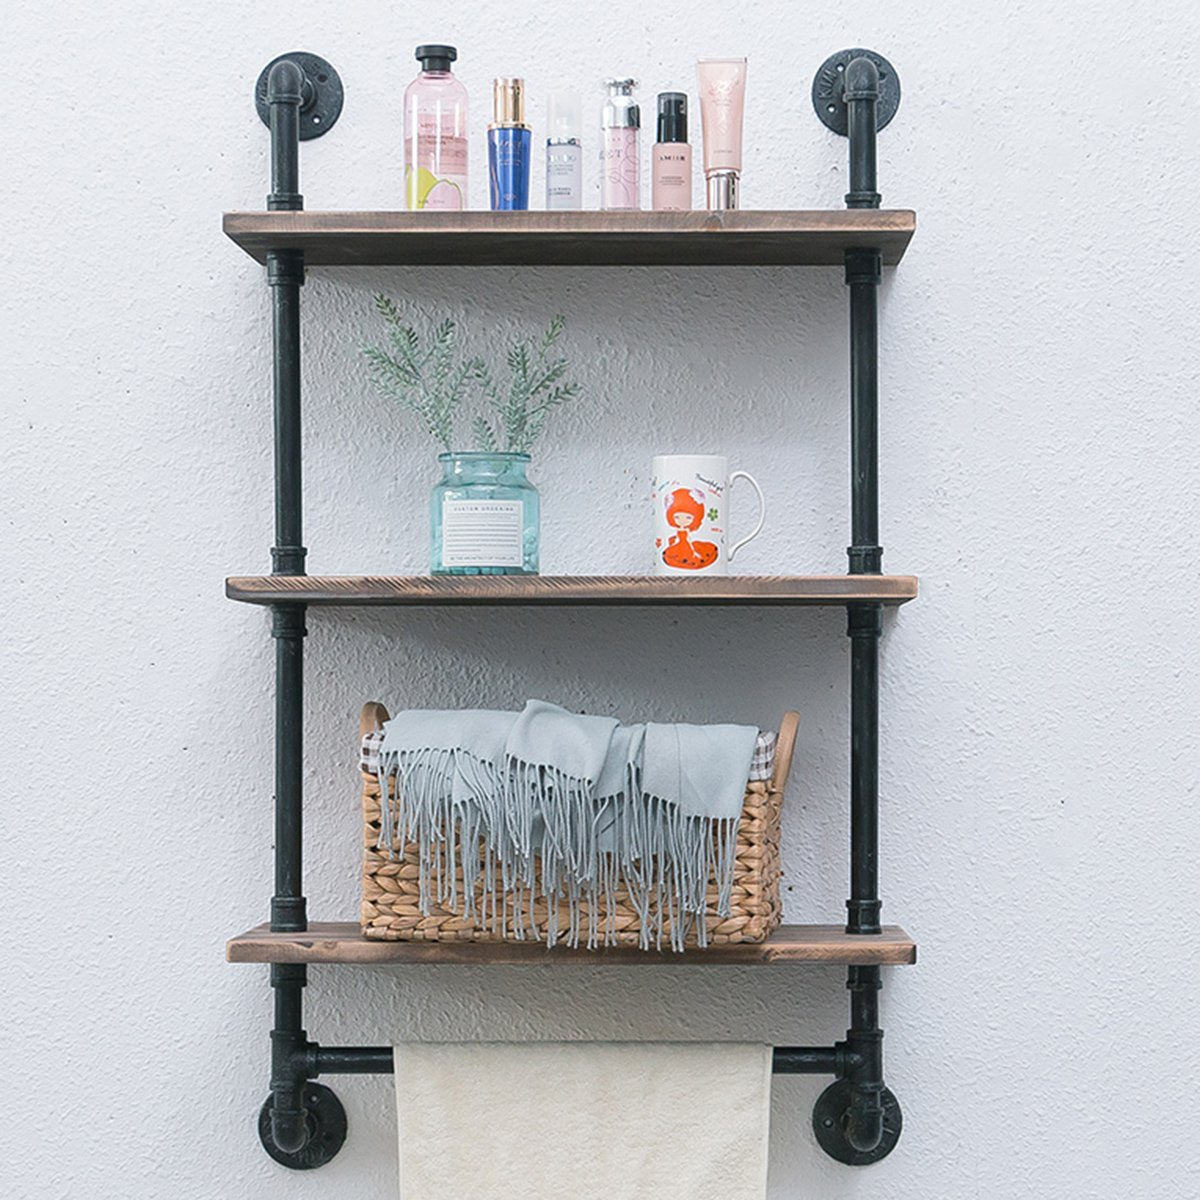 Amazon.com: Industrial Pipe Shelf,Rustic Wall Shelf with Towel Bar ...